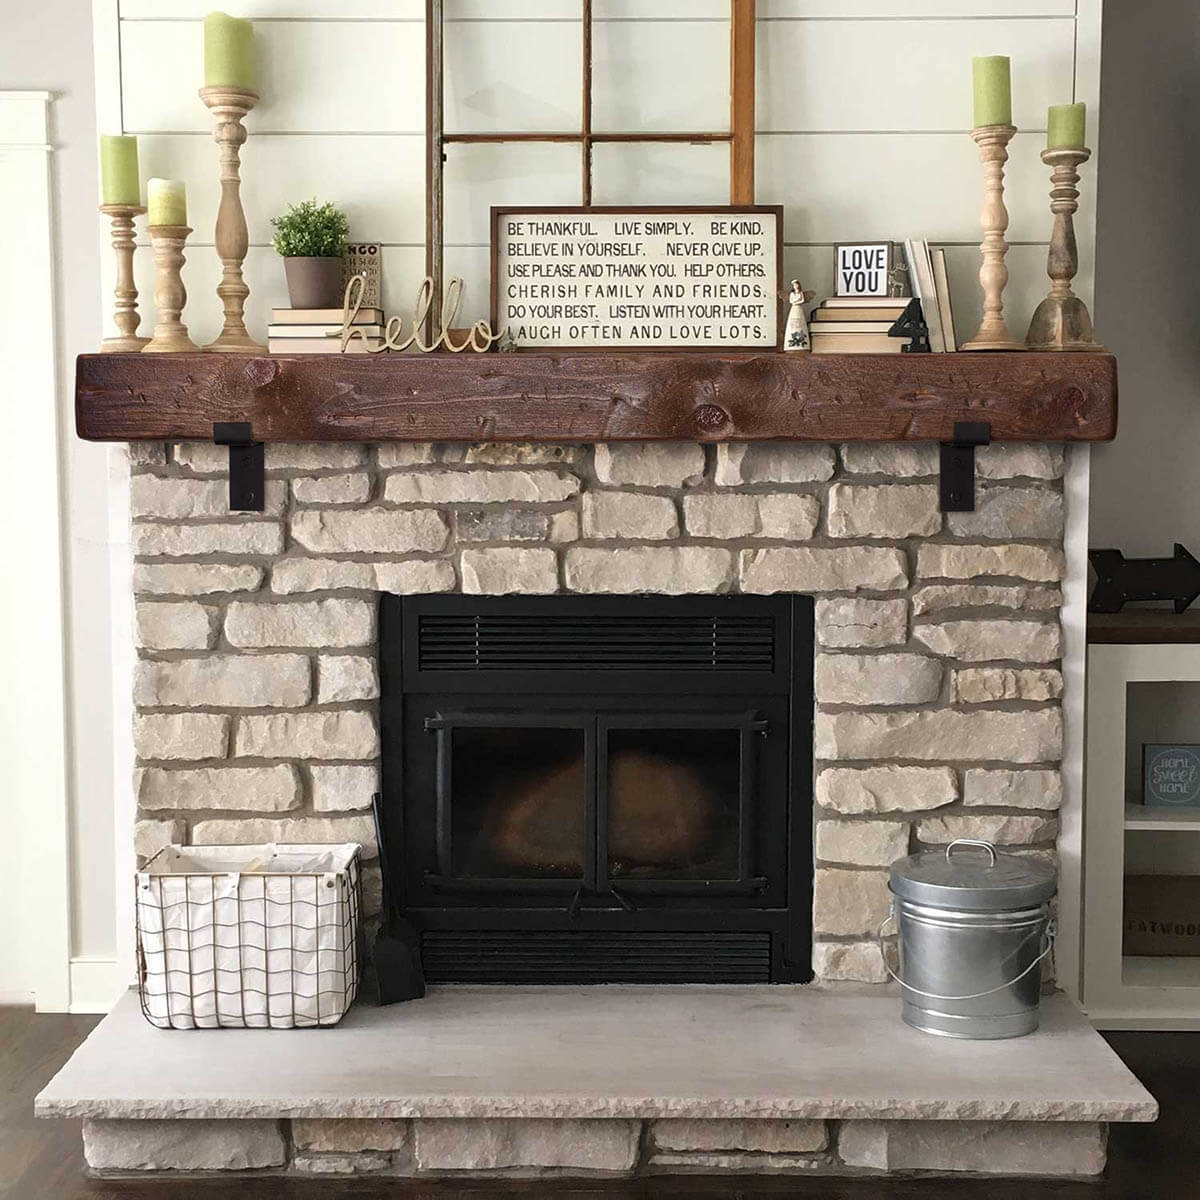 Unique Barn Beam Mantle with Black Metal Brackets